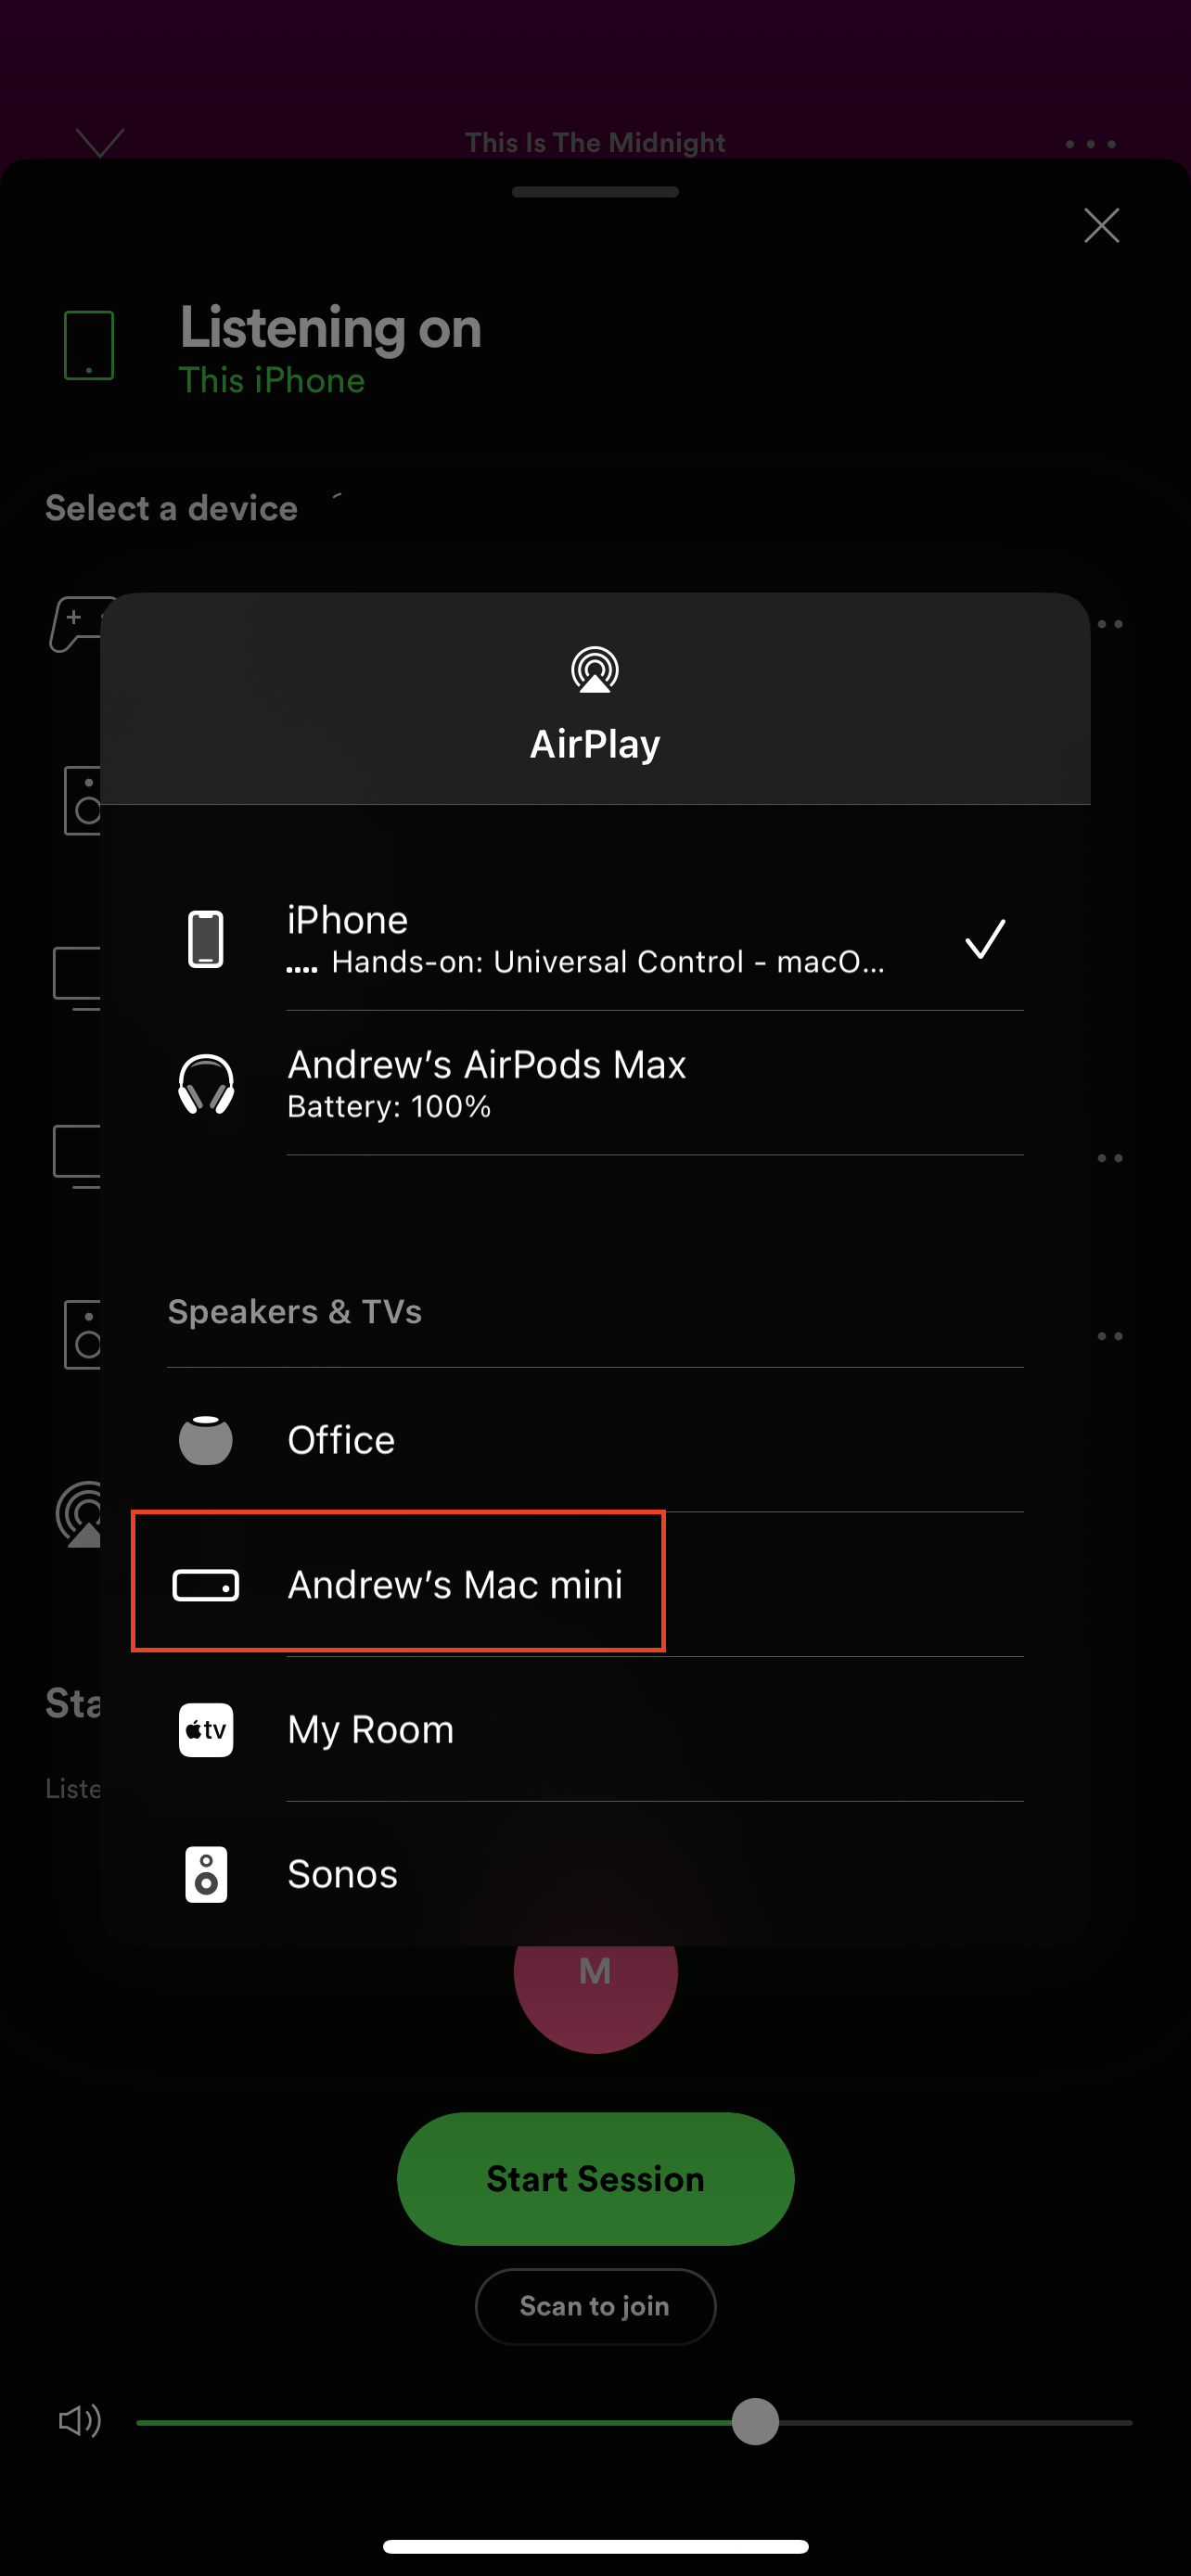 How to AirPlay from iPhone to Mac using Spotify 2